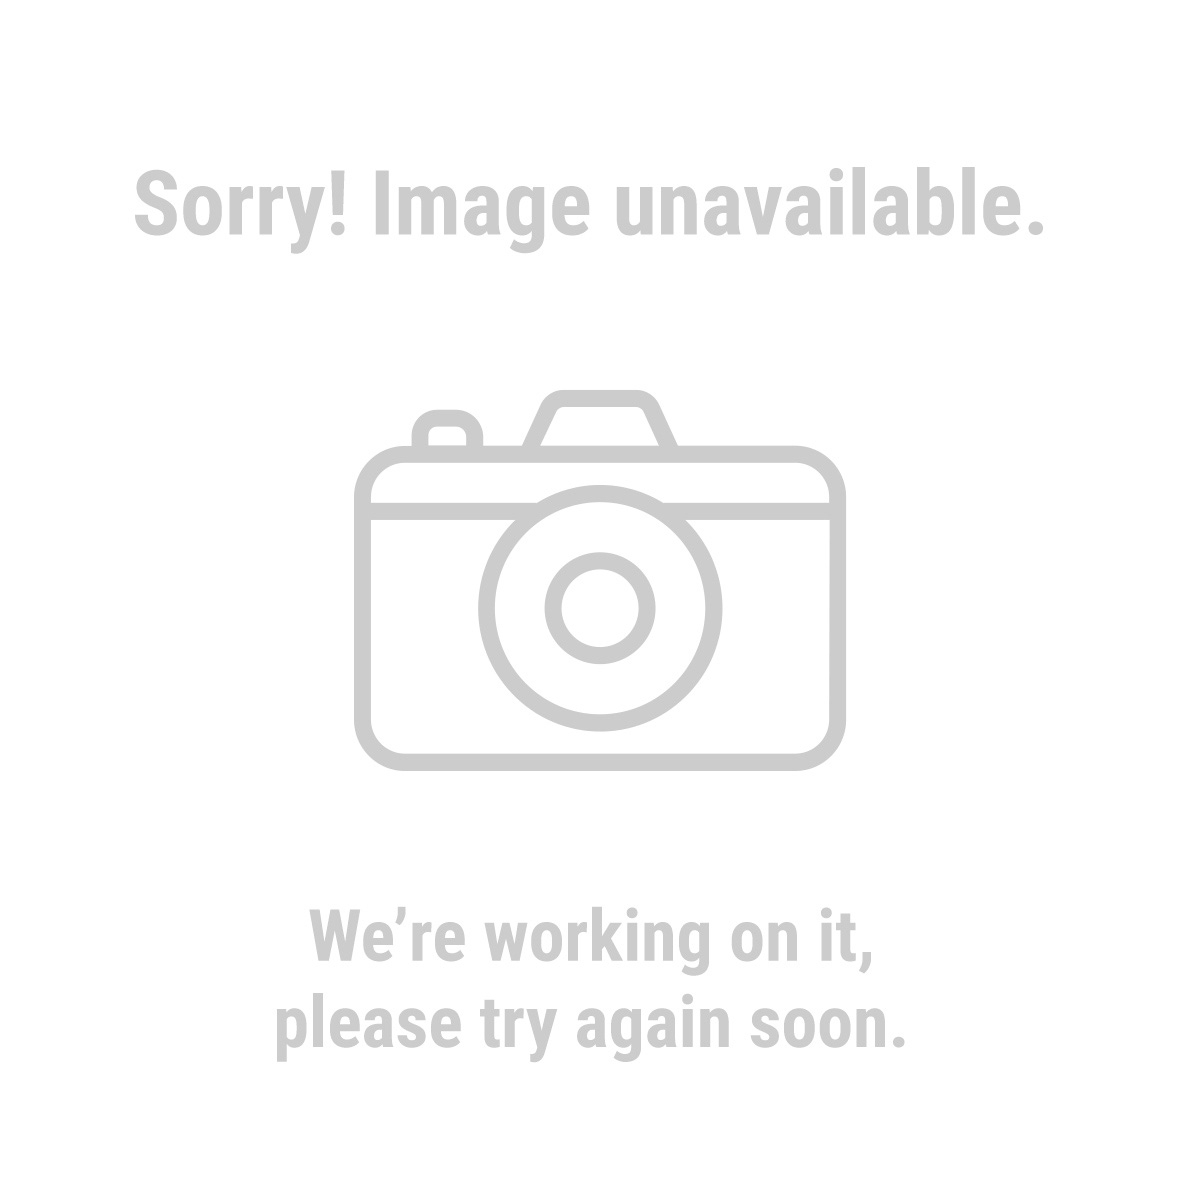 Chicago Electric Power Tools 61972 10 in. Sliding Compound Miter Saw